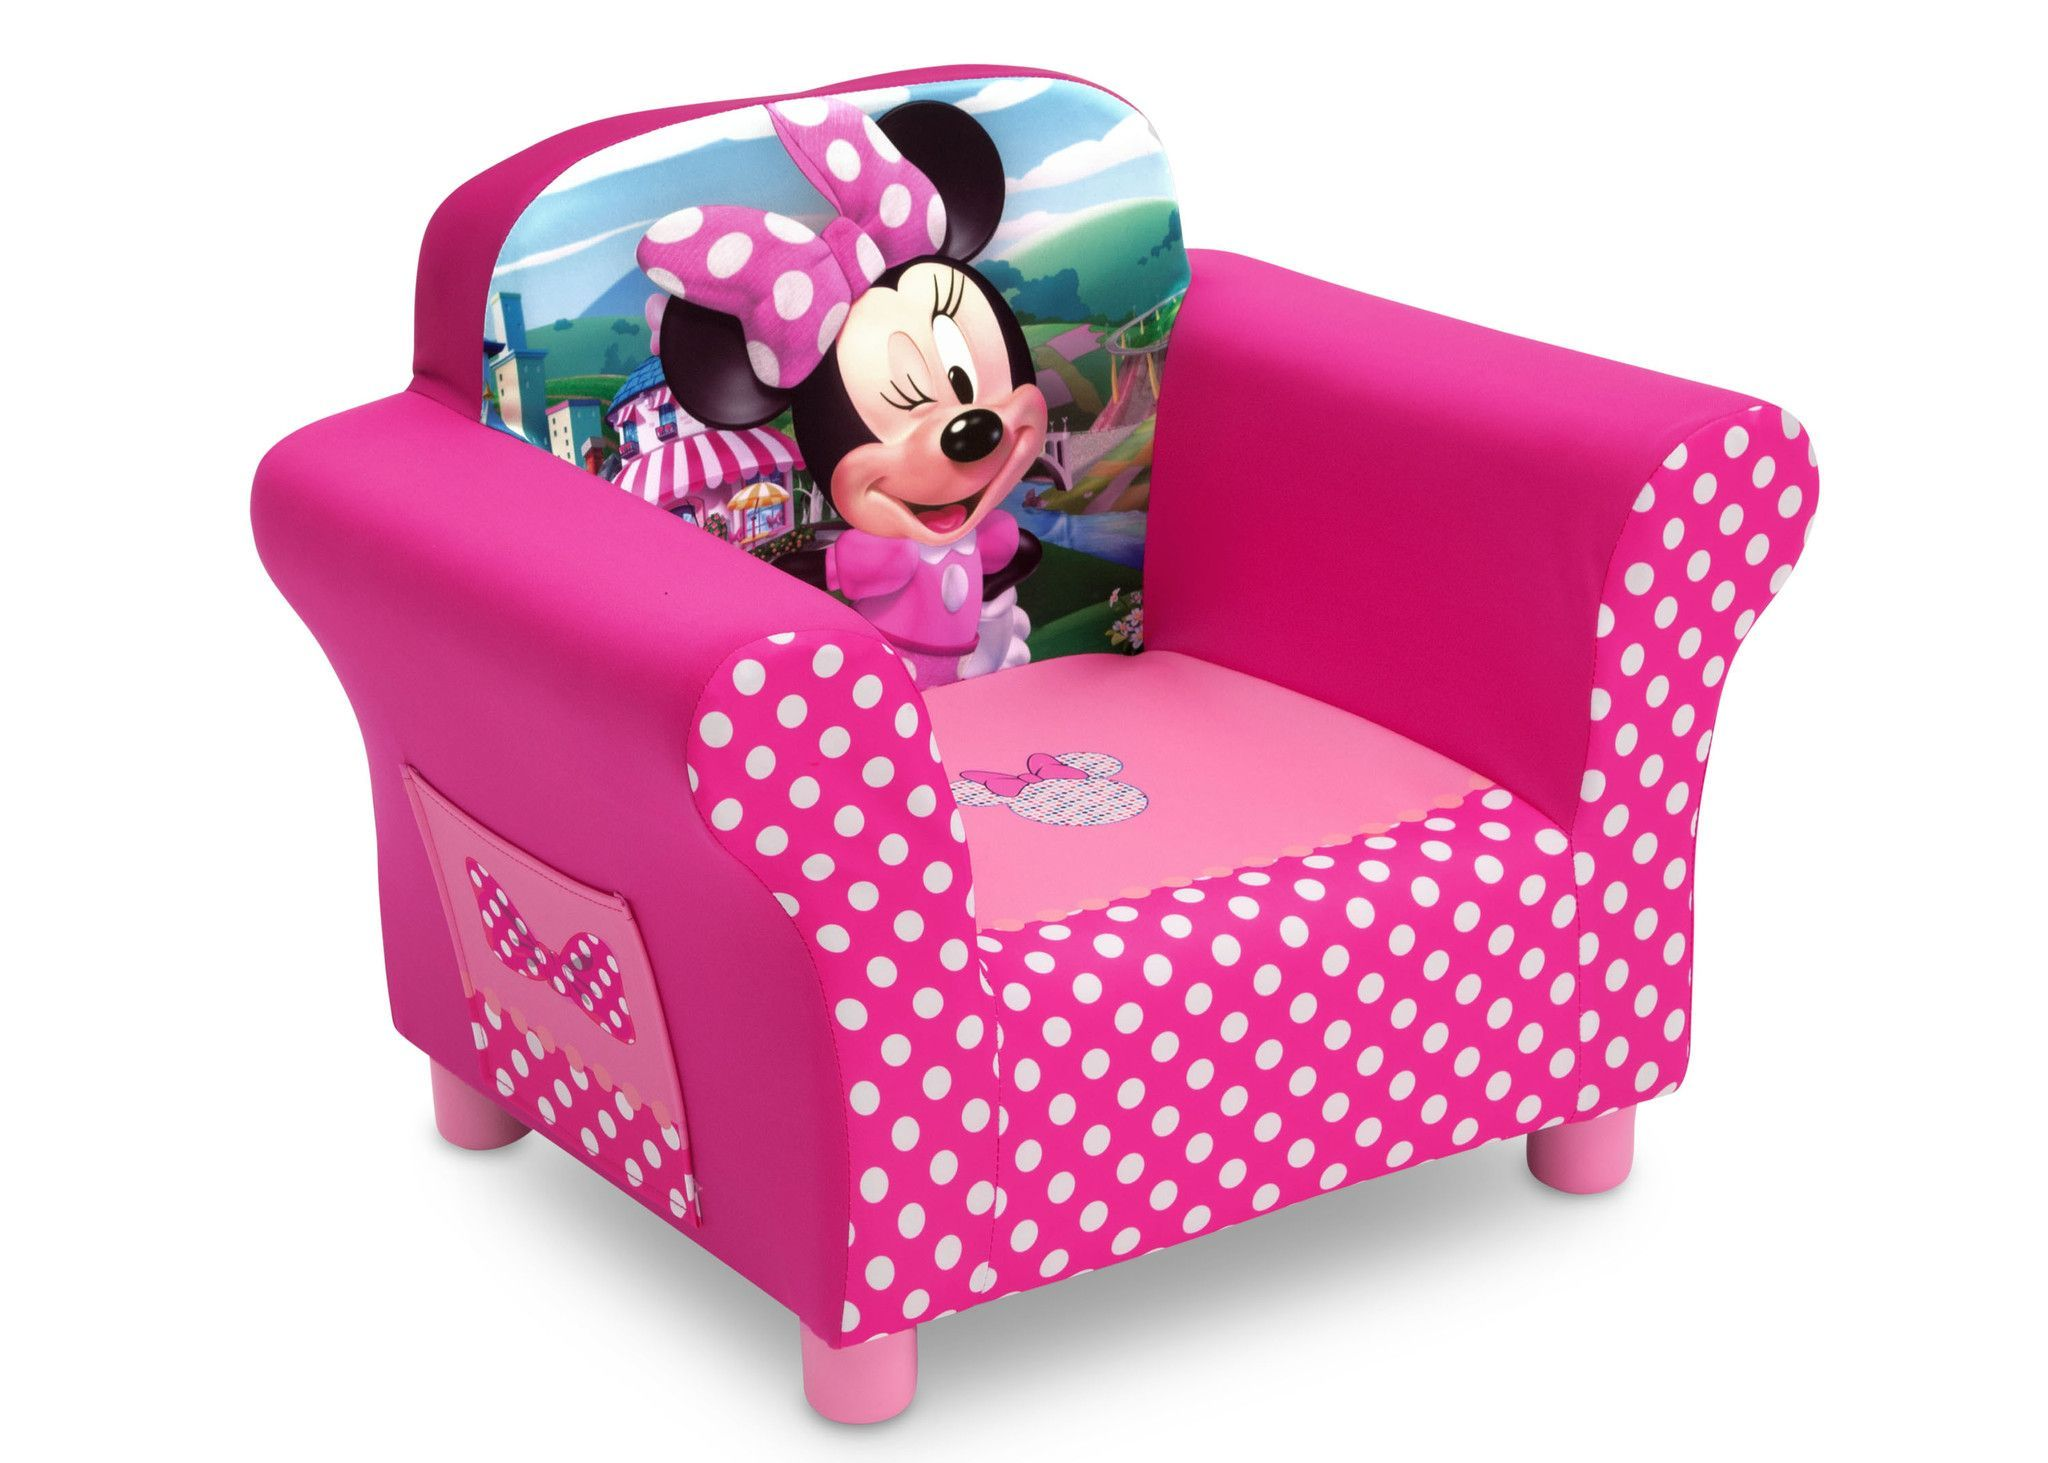 She'll love to snuggle up in this Disney Minnie Mouse ...